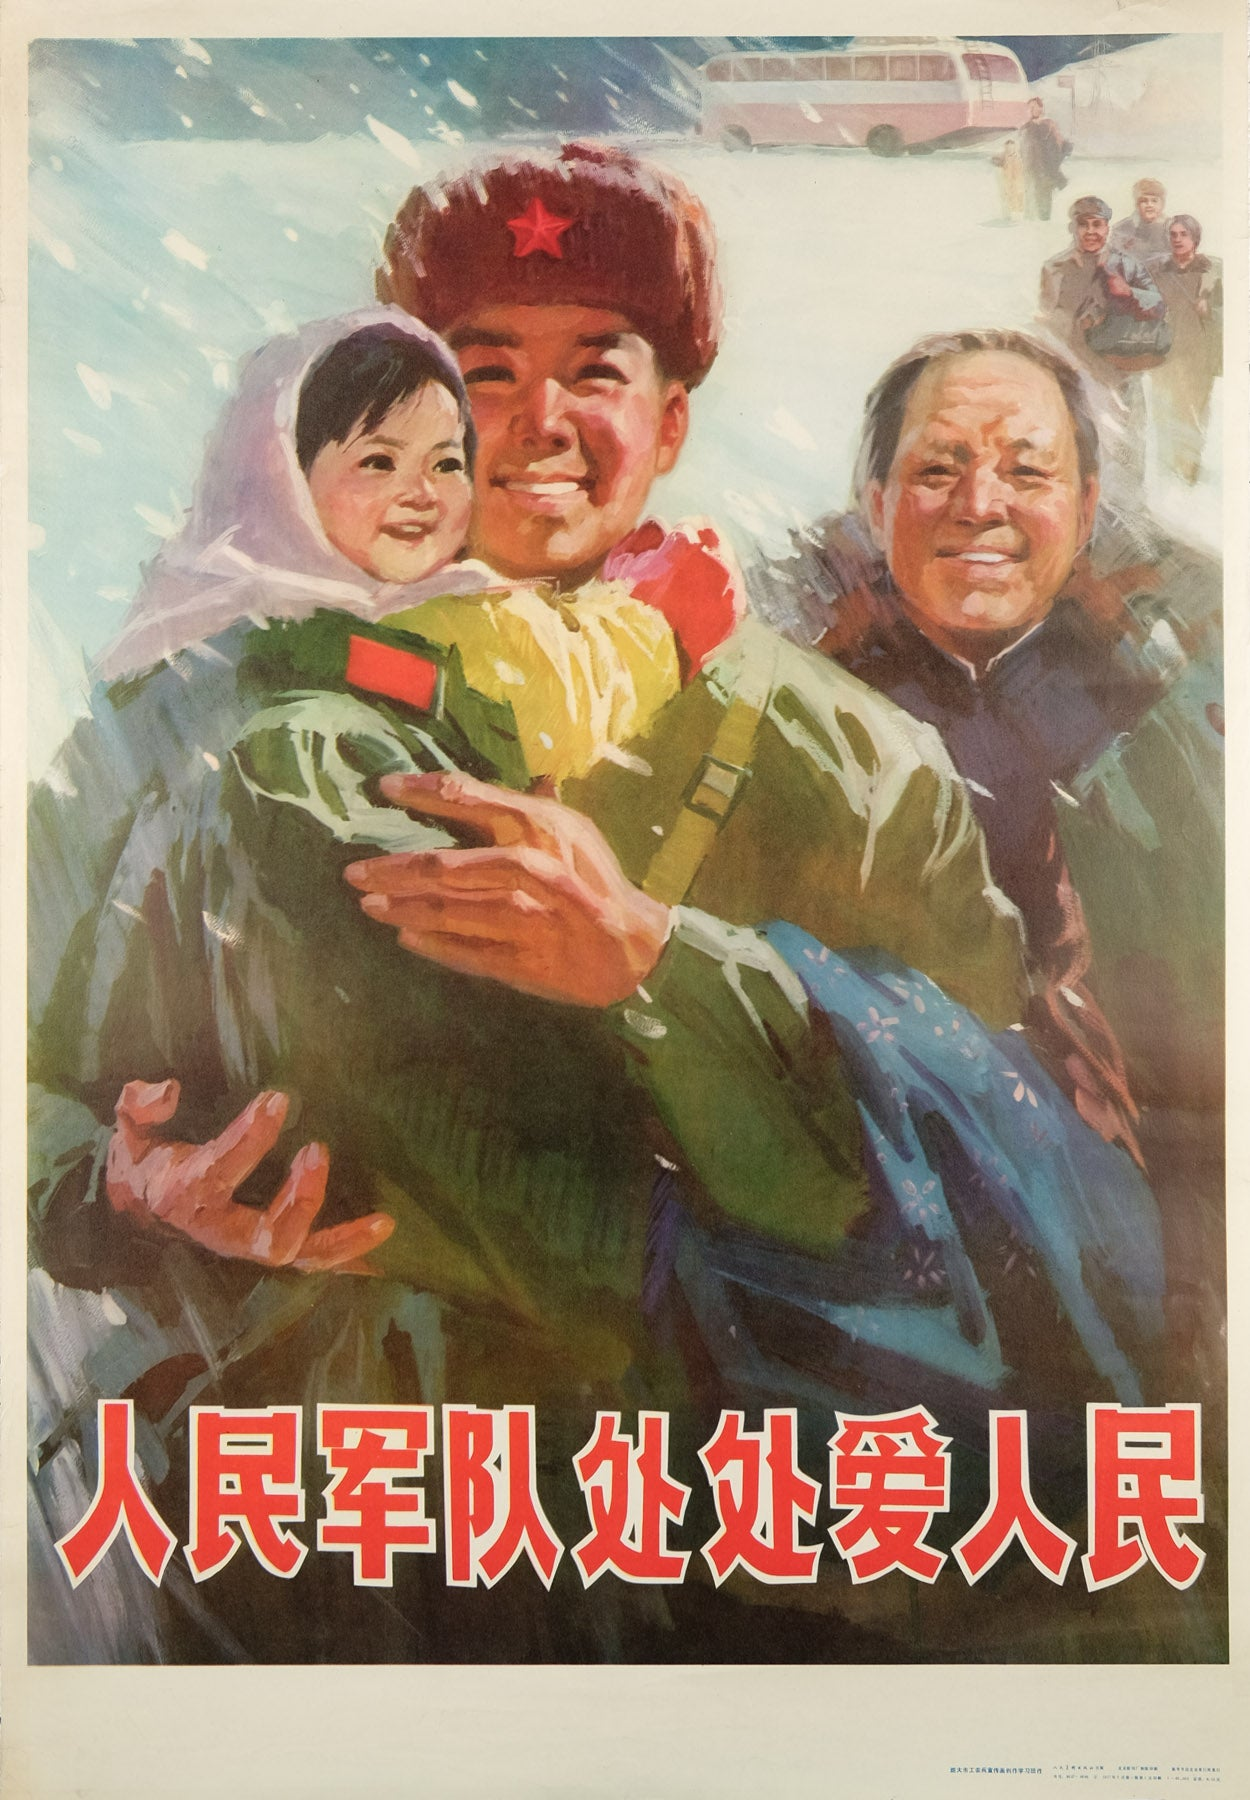 original vintage 1977 Chinese communist propaganda poster The people's armed forces love the people everywhere